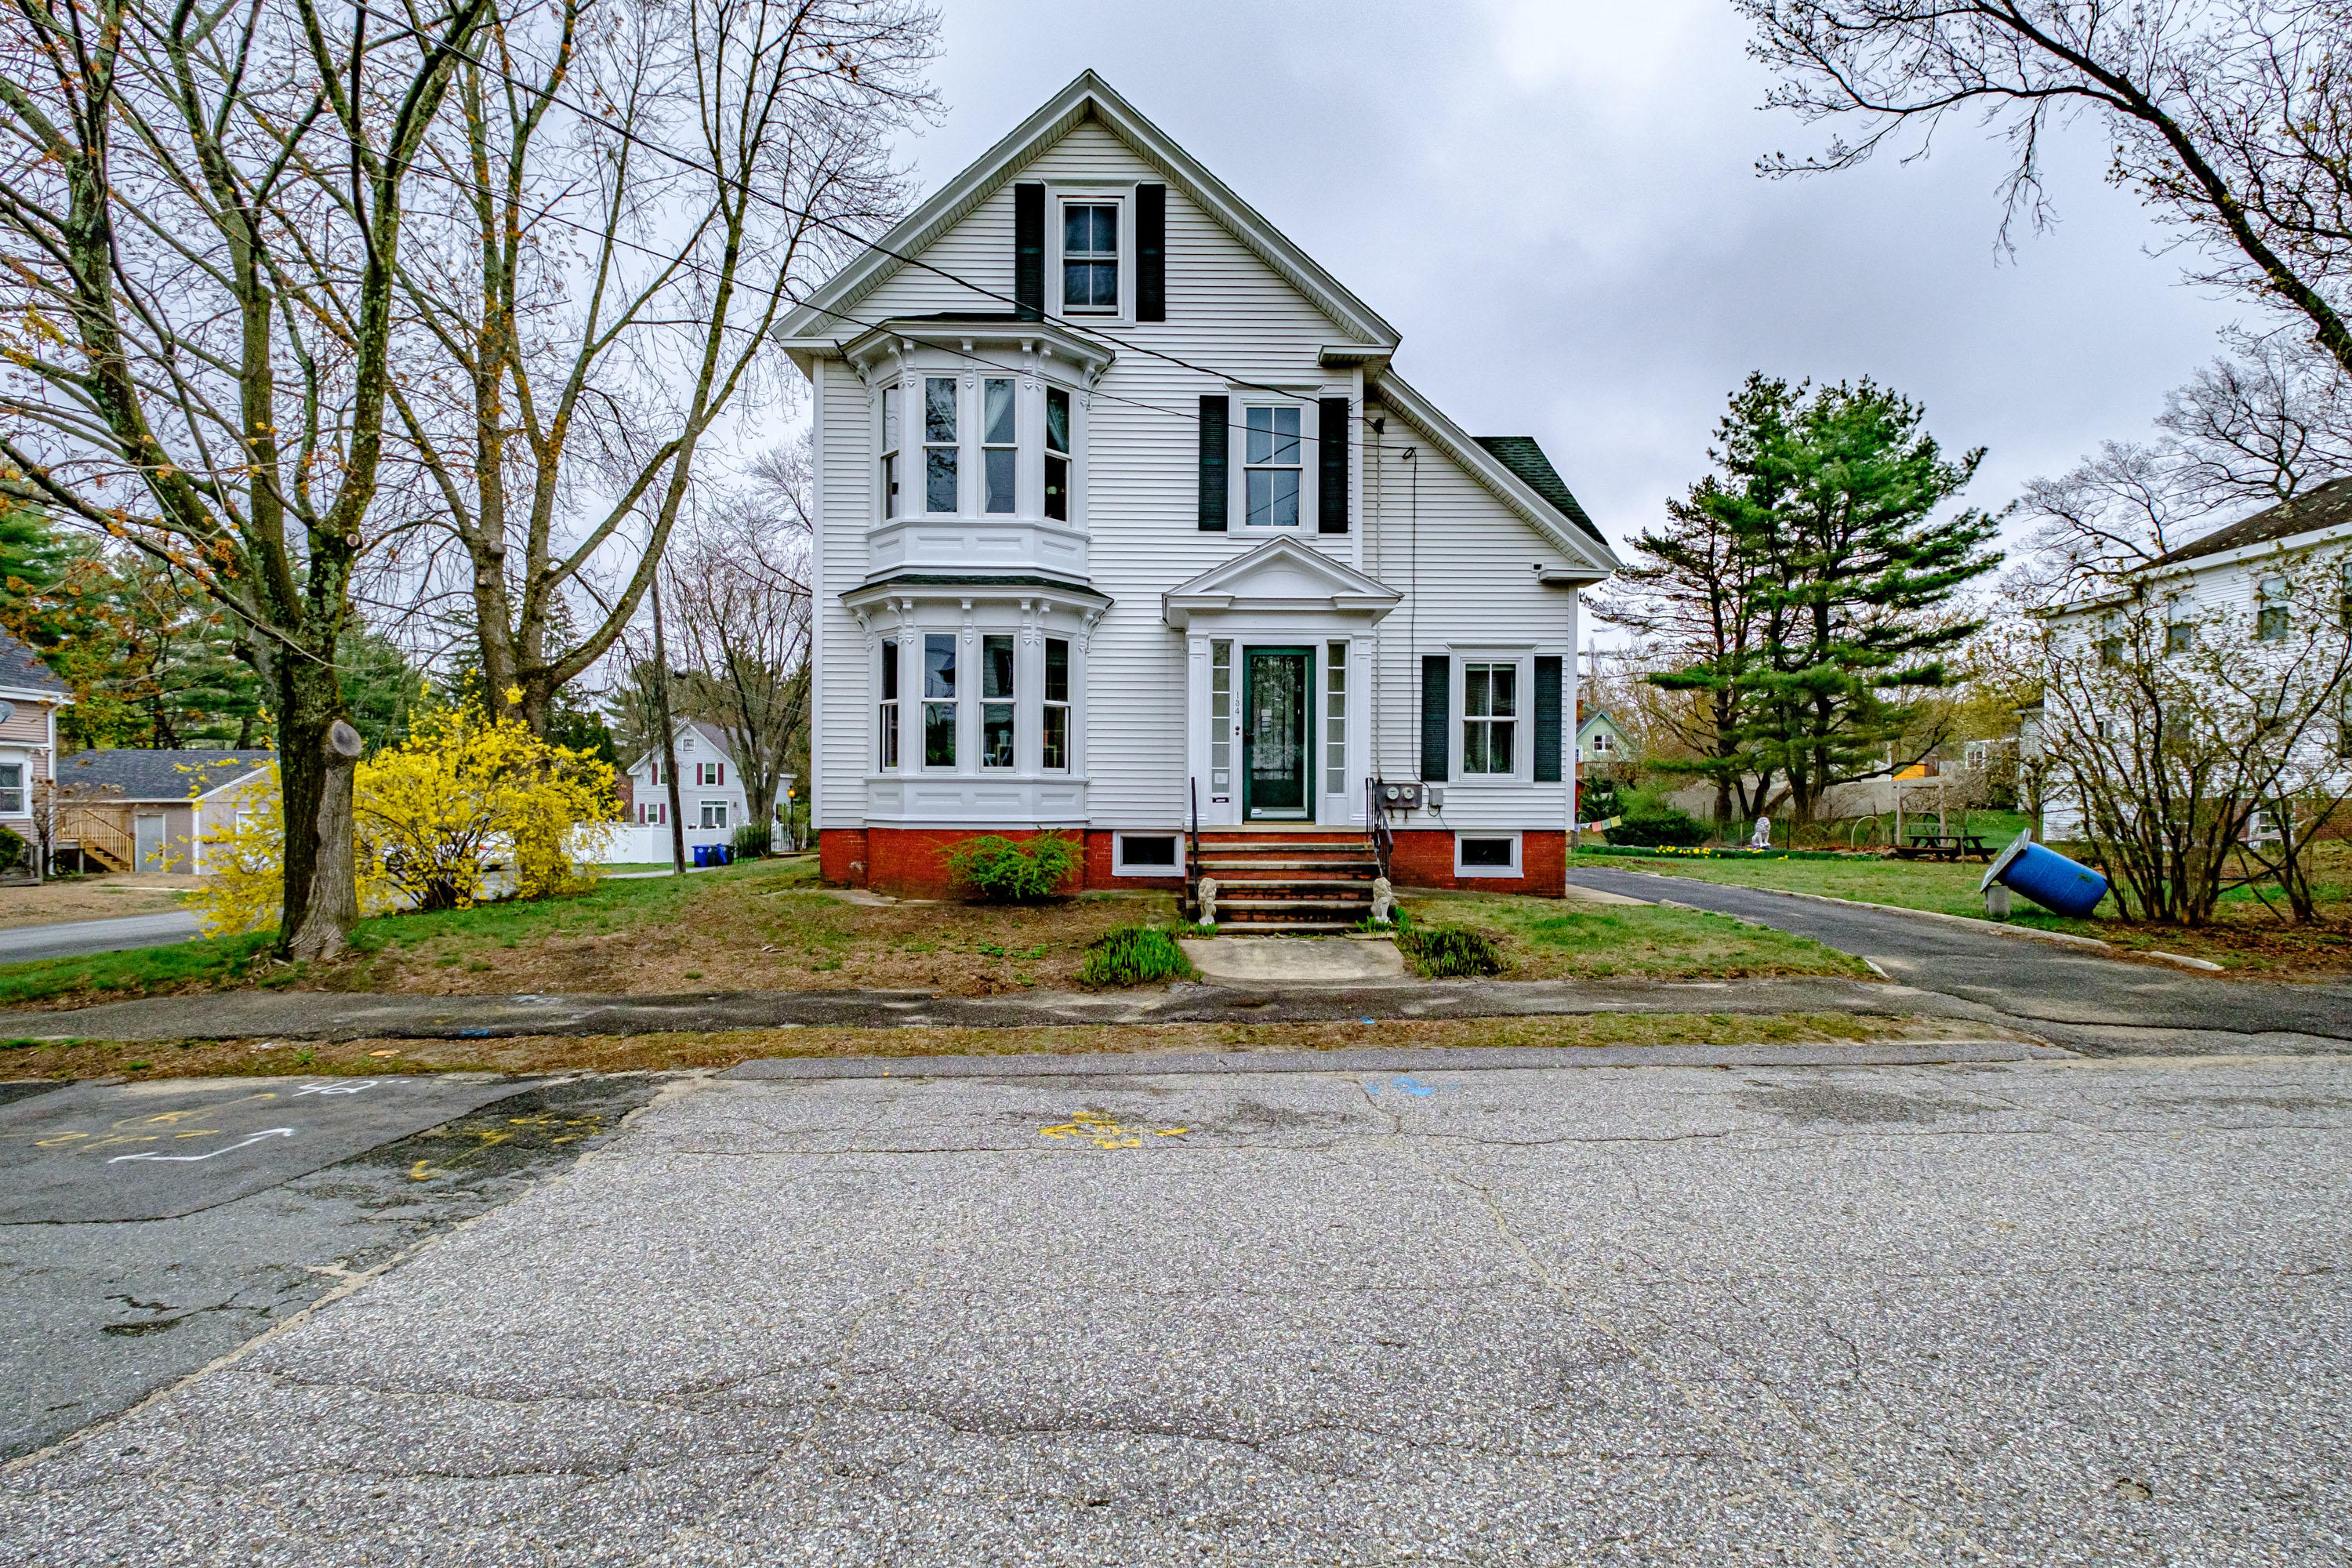 Main image for MLS listing 1490205